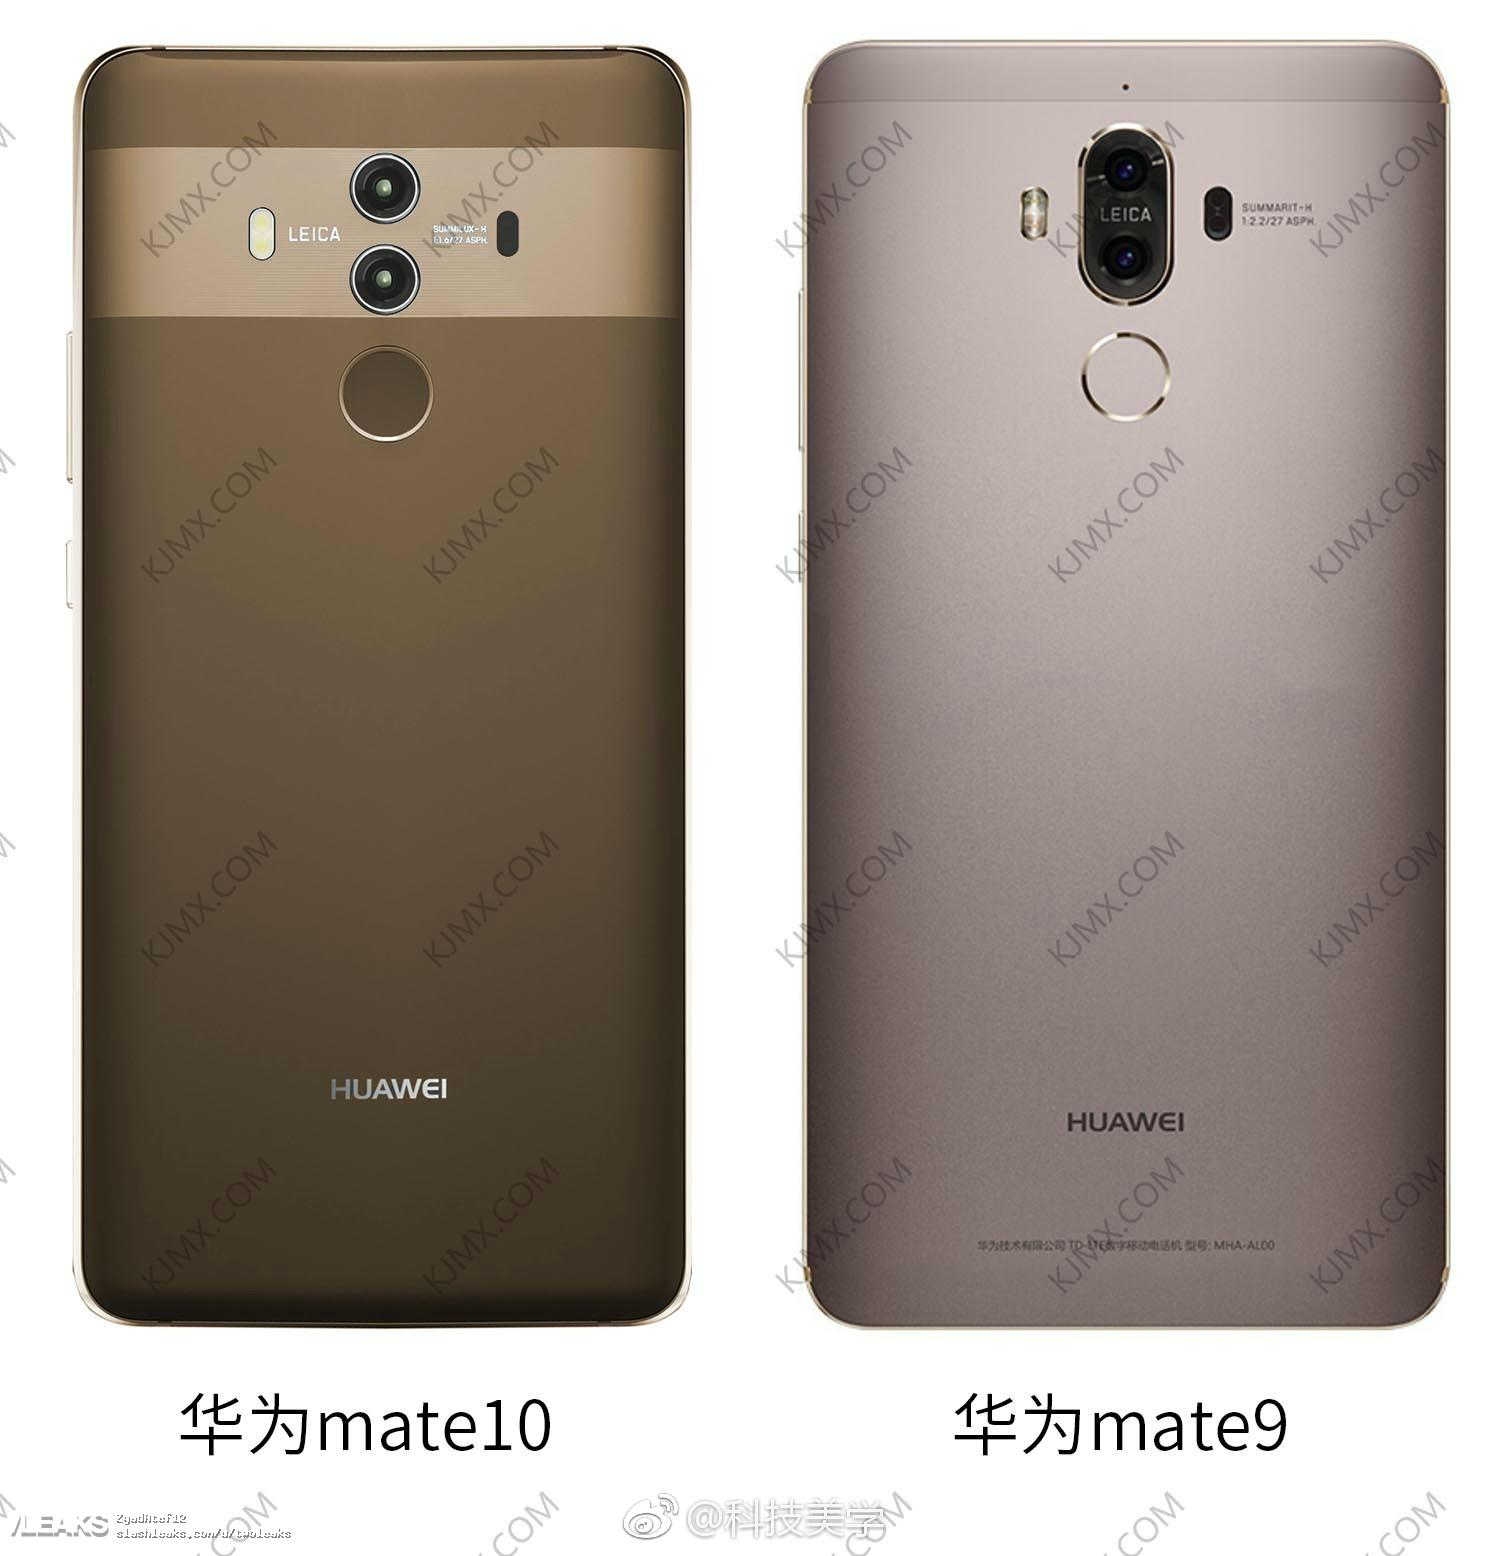 Here S What The Huawei Mate 10 Looks Like Next To Last